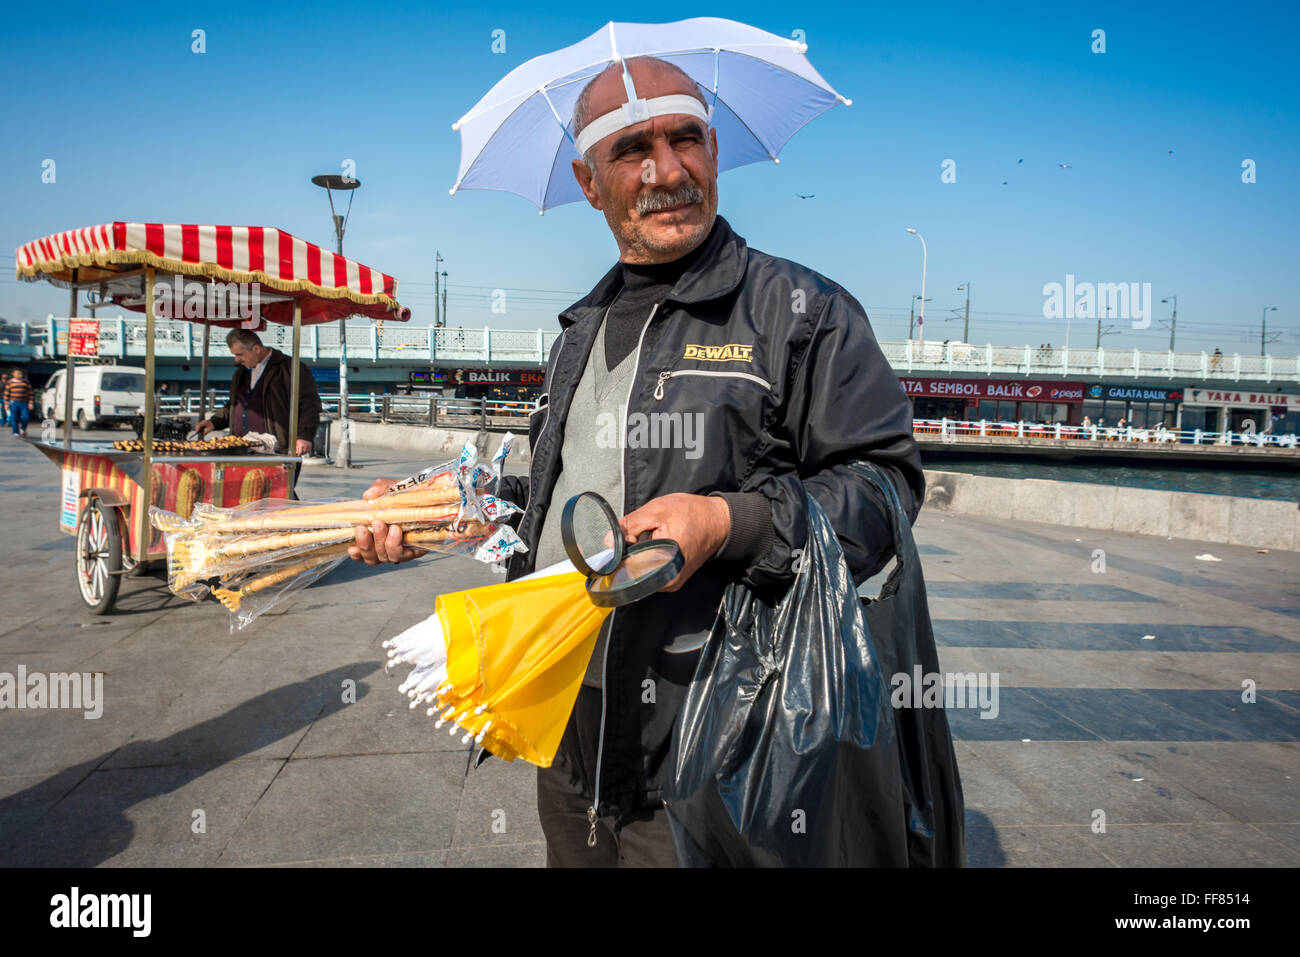 Street hawker selling his wares on the streets of Istanbul, Turkey. - Stock Image